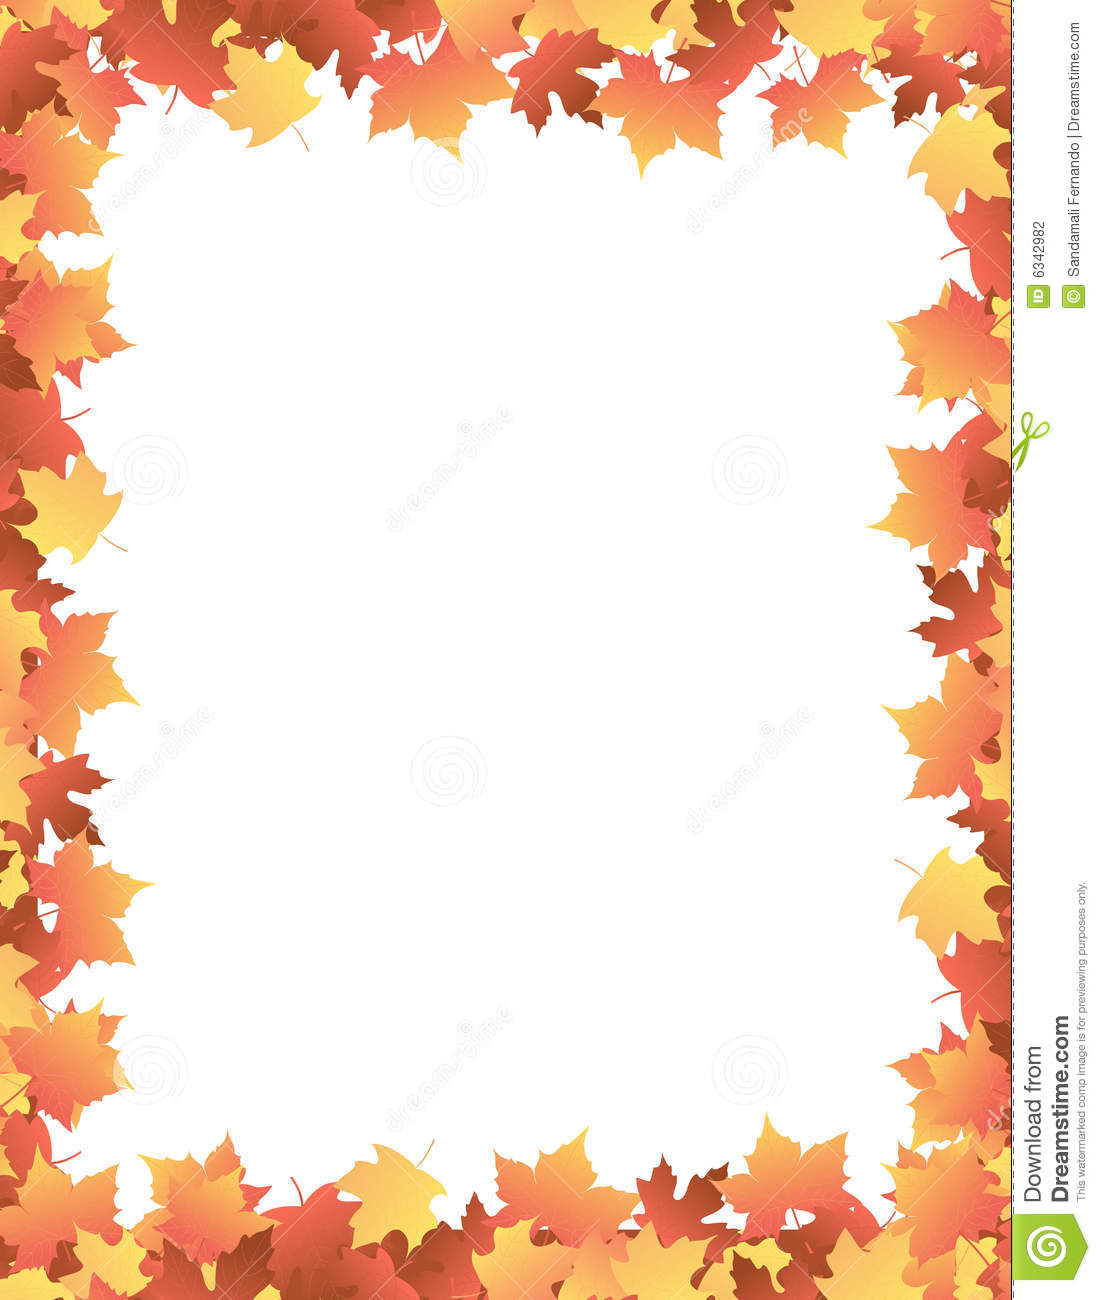 1863 Autumn Leaves free clipart.